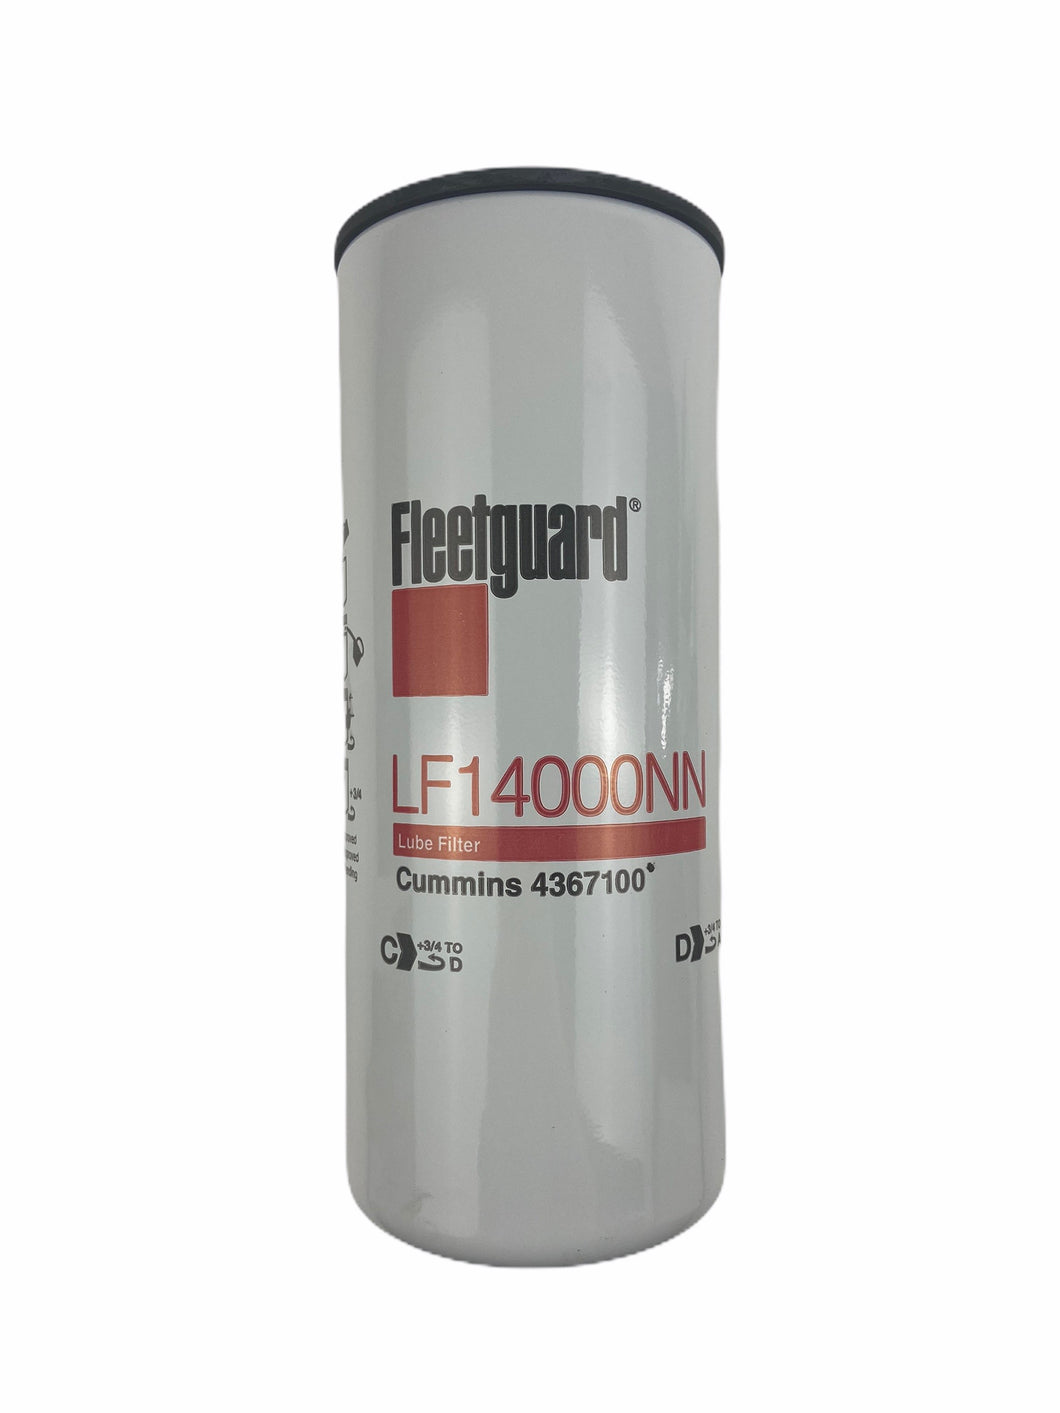 Fleetguard LF14000NN Oil Filter